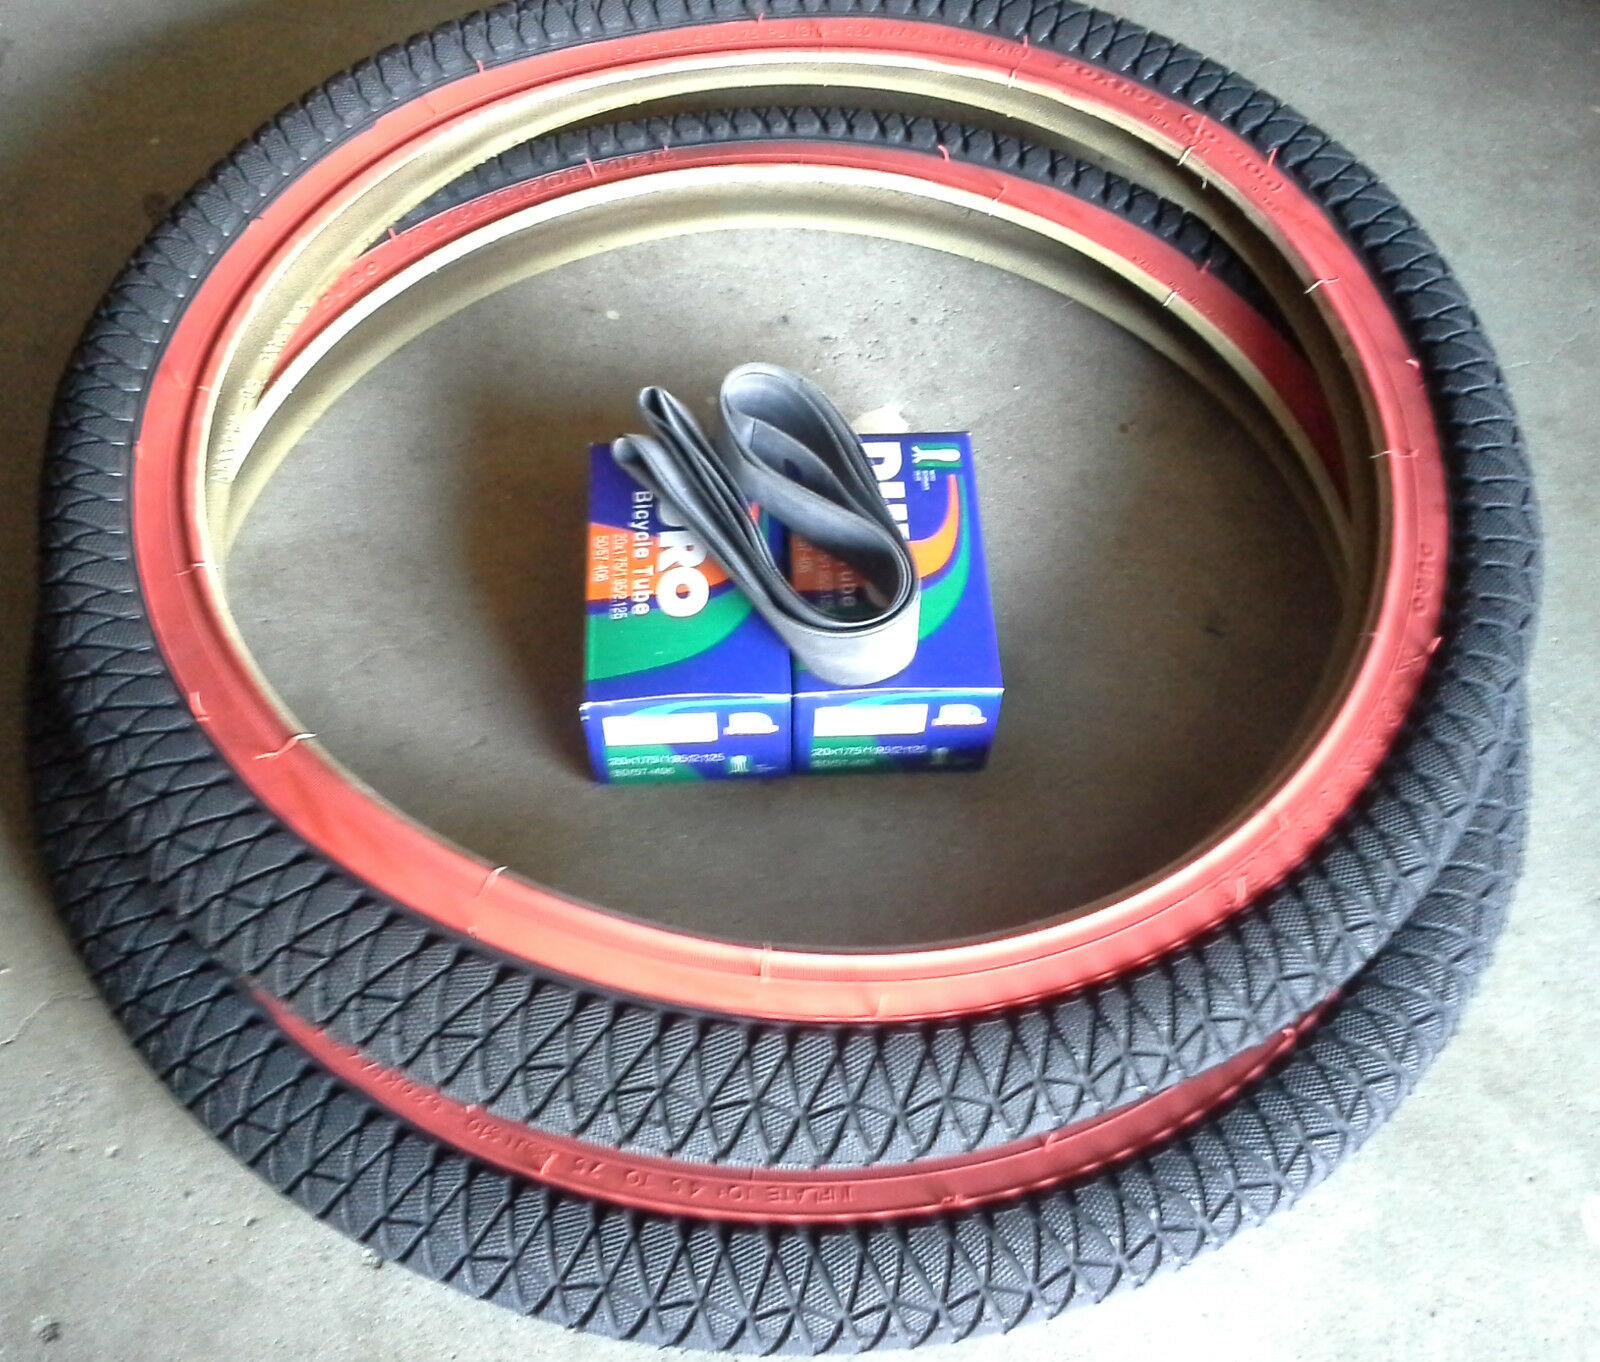 1 PAIR 20X1.95 BMX BICYCLE DURO TIRES PLUS 2 TUBES - RED WALL - FREE RIM LINERS